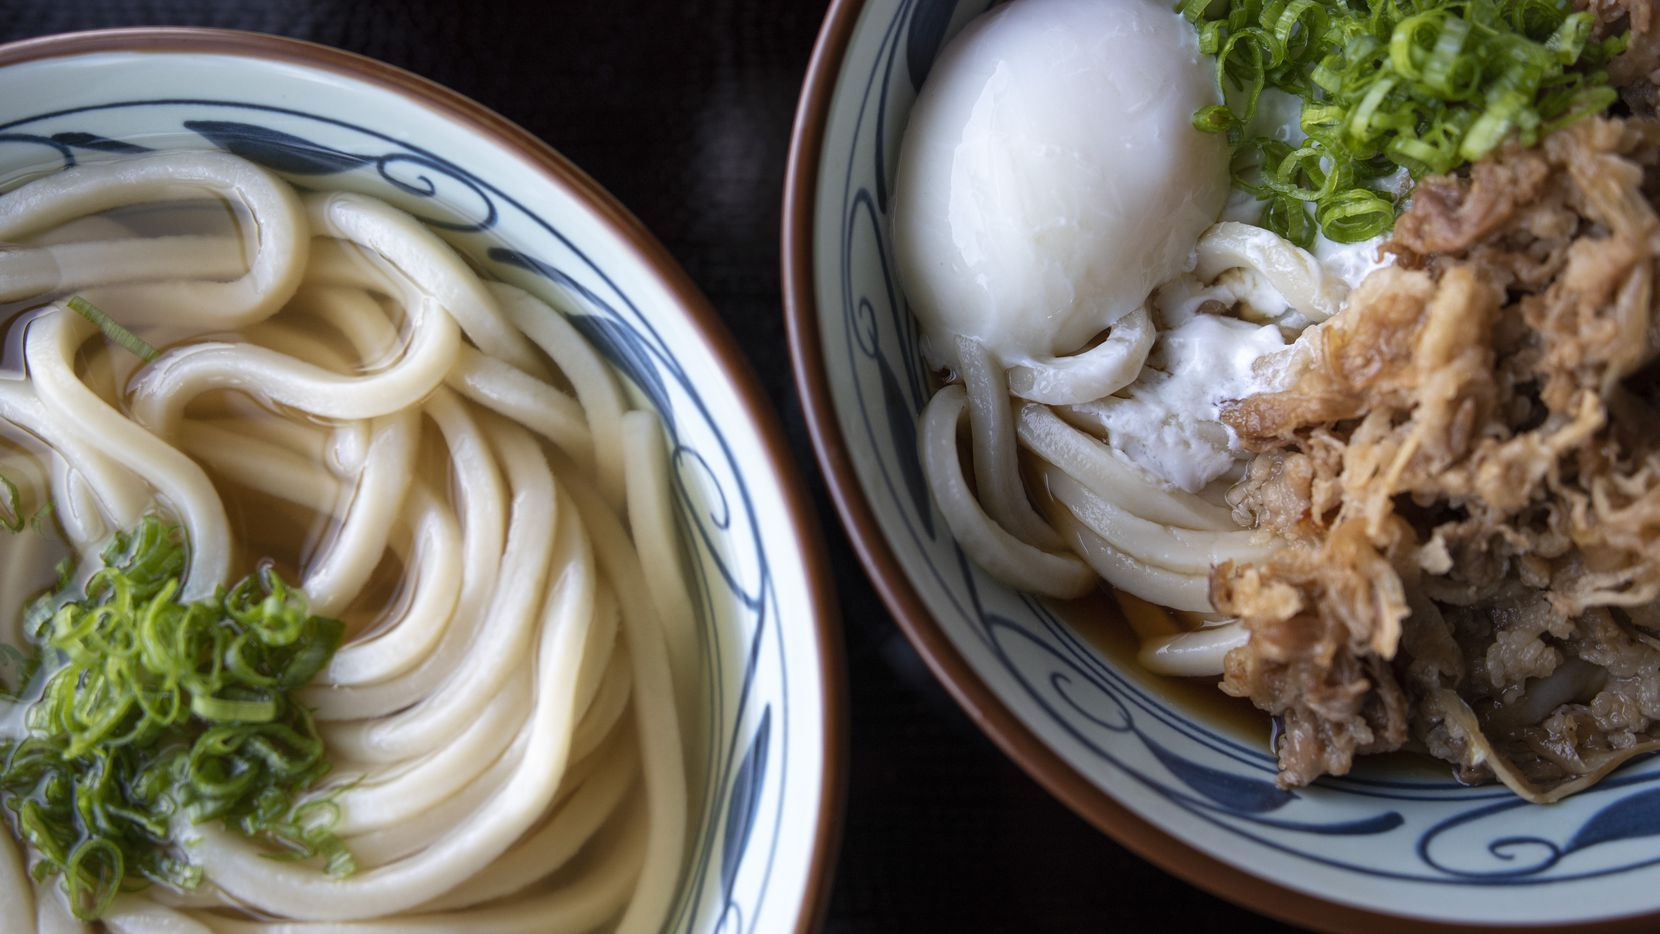 Marugame opens in Carrollton Aug. 31, 2020. Kake, an udon bowl in dashi broth (on left), and nikutama, an udon bowl with sweet beef and soft egg, are two of the menu items at the new restaurant in Carrollton.